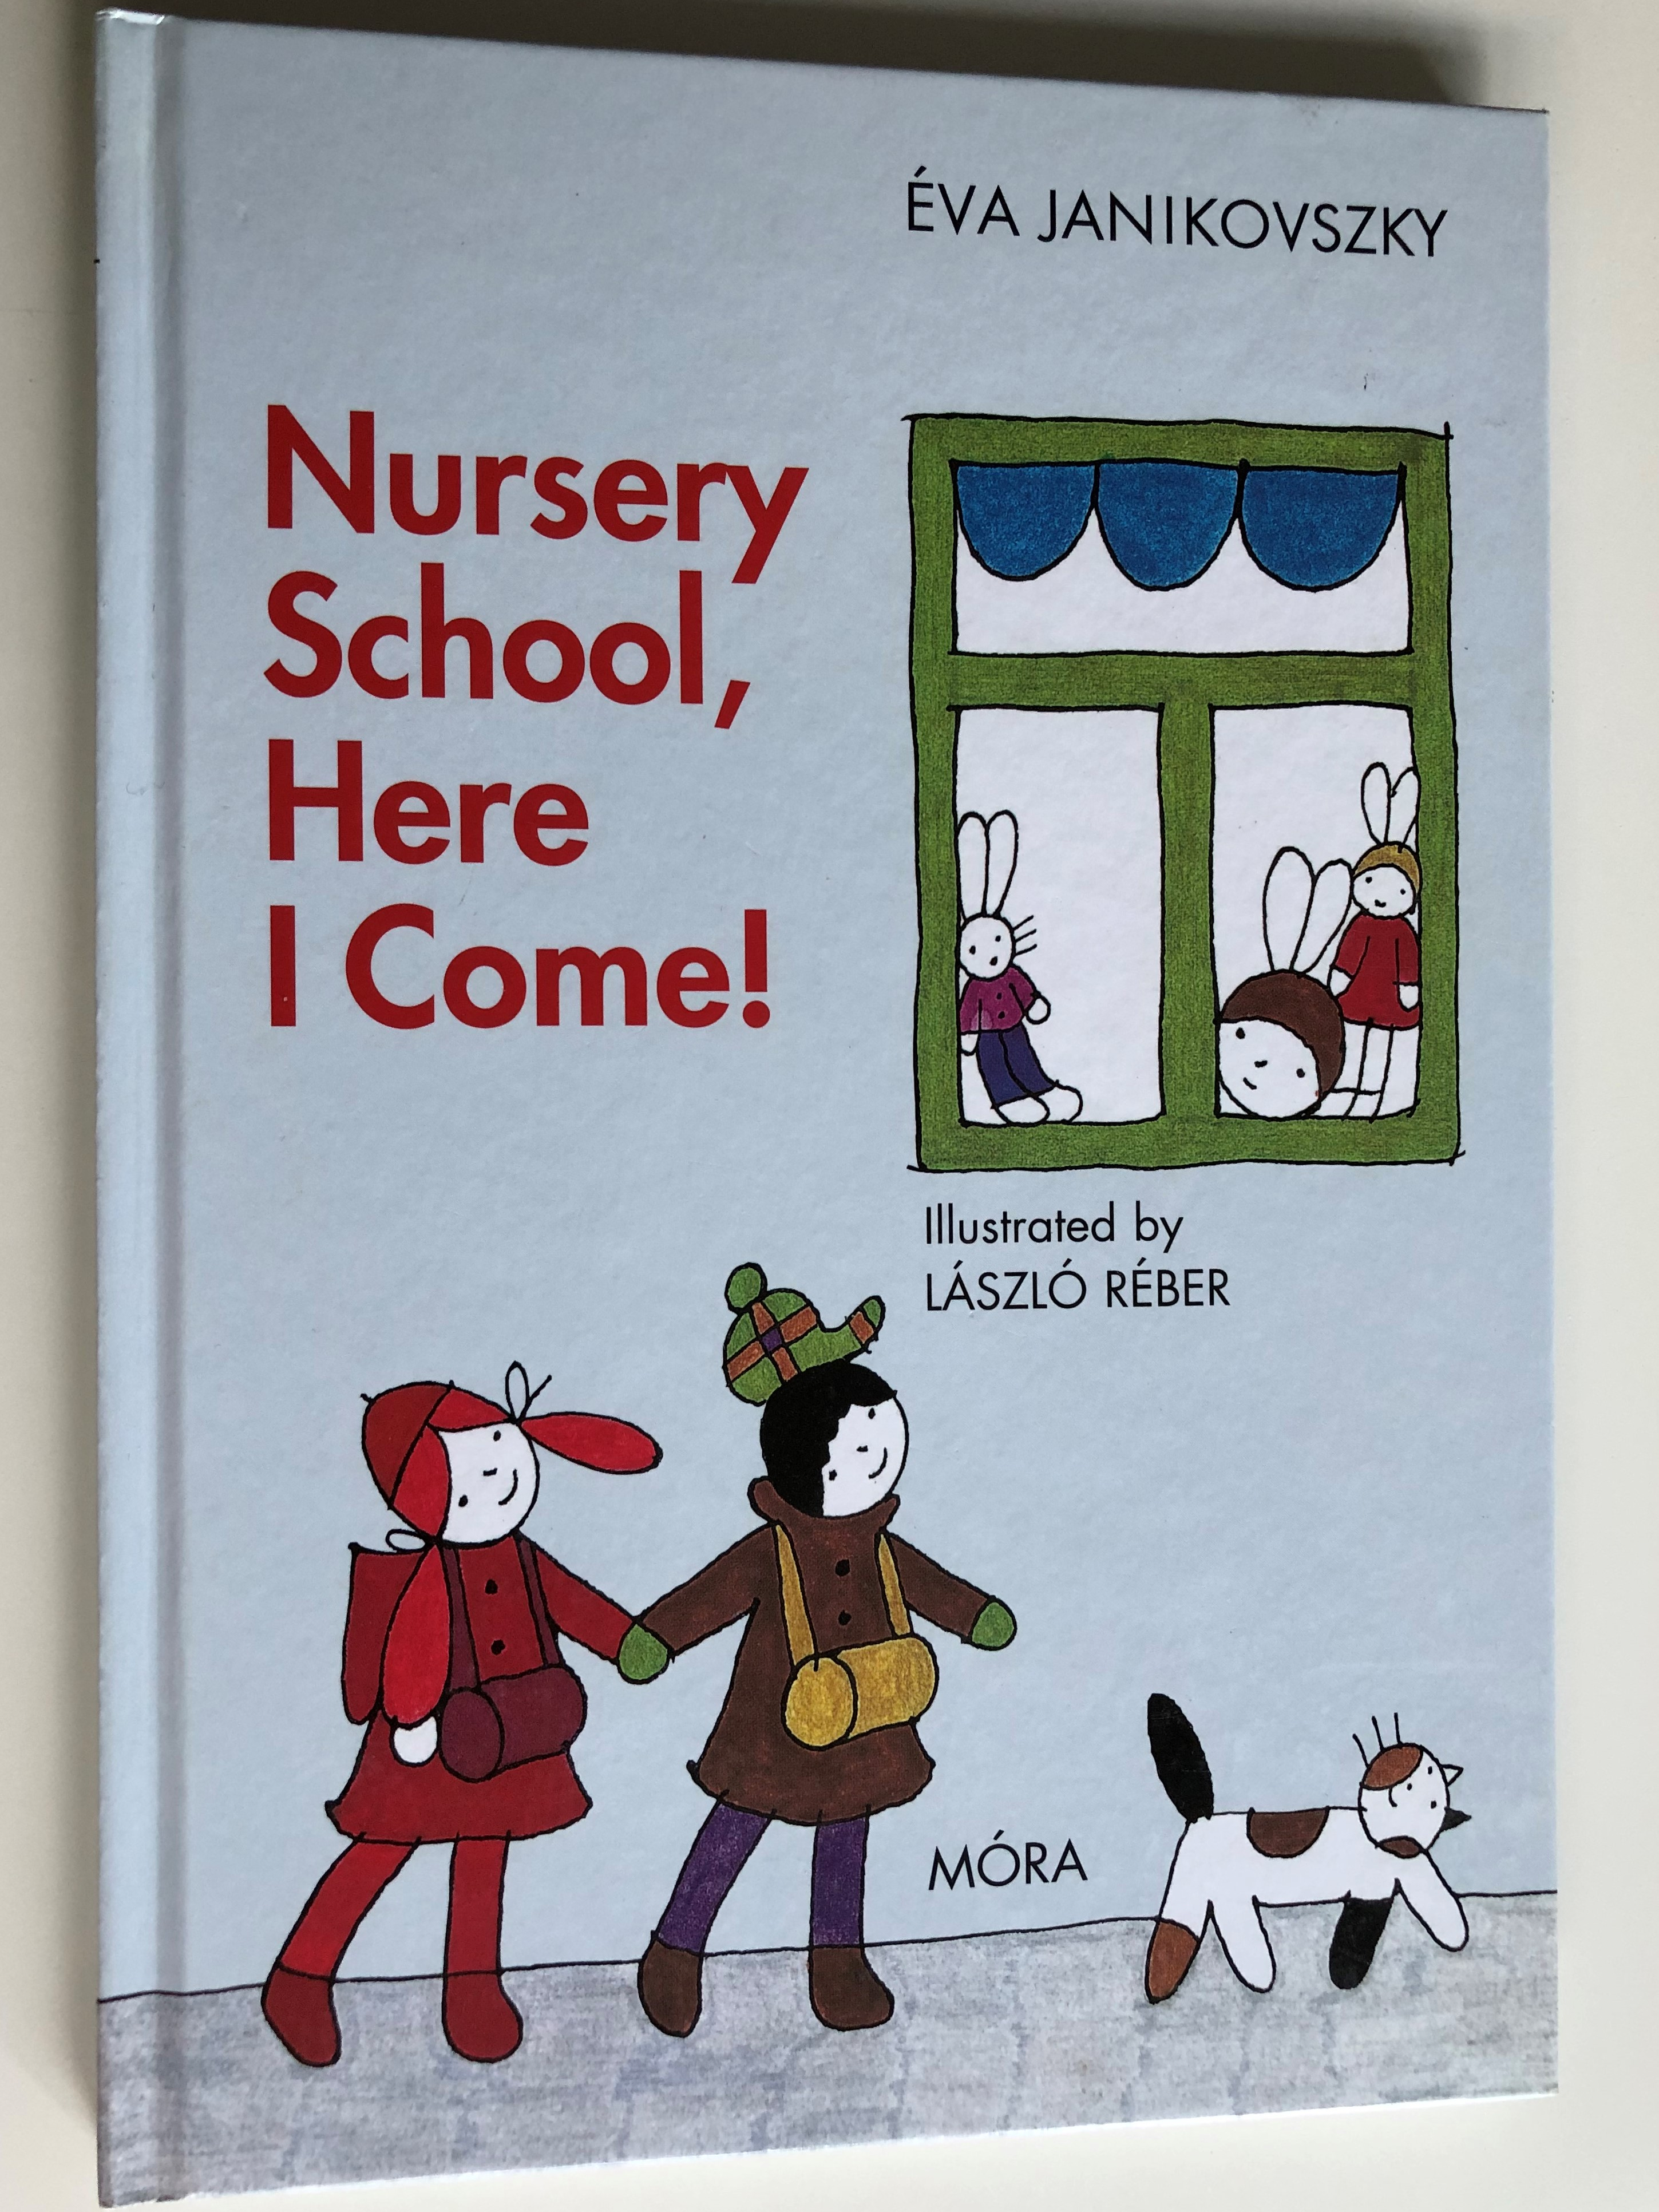 nursery-school-here-i-come-by-va-janikovszky-illustrated-by-l-szl-r-ber-m-ra-publishing-house-2012-hardcover-1-.jpg